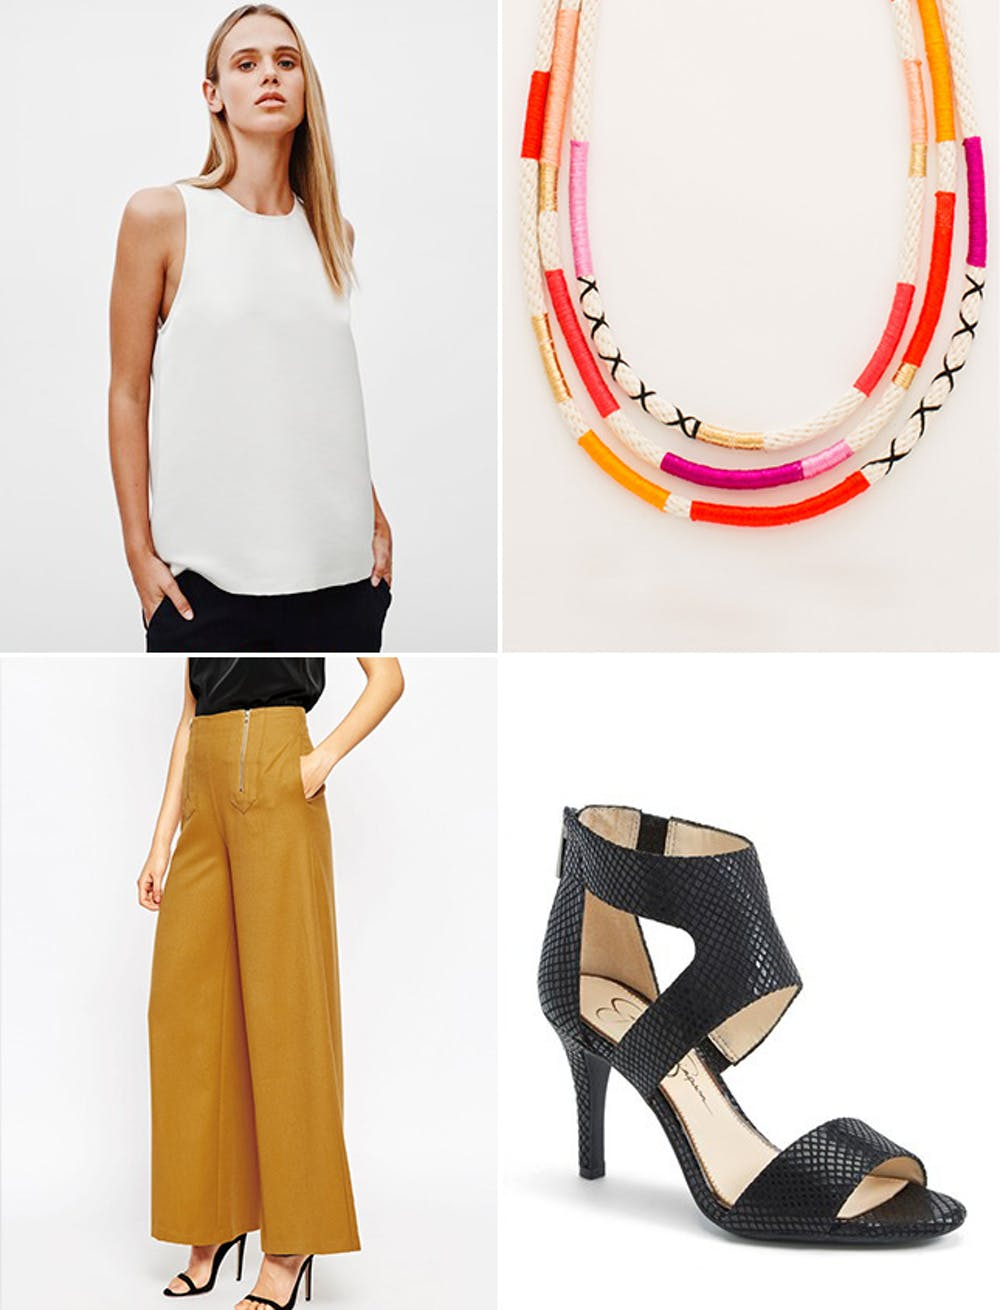 what-to-wear-for-a-spring-wedding-guest-outfit-yellow-wideleg-pants-black-shoe-sandalh-white-top-necklace-dinner.jpg